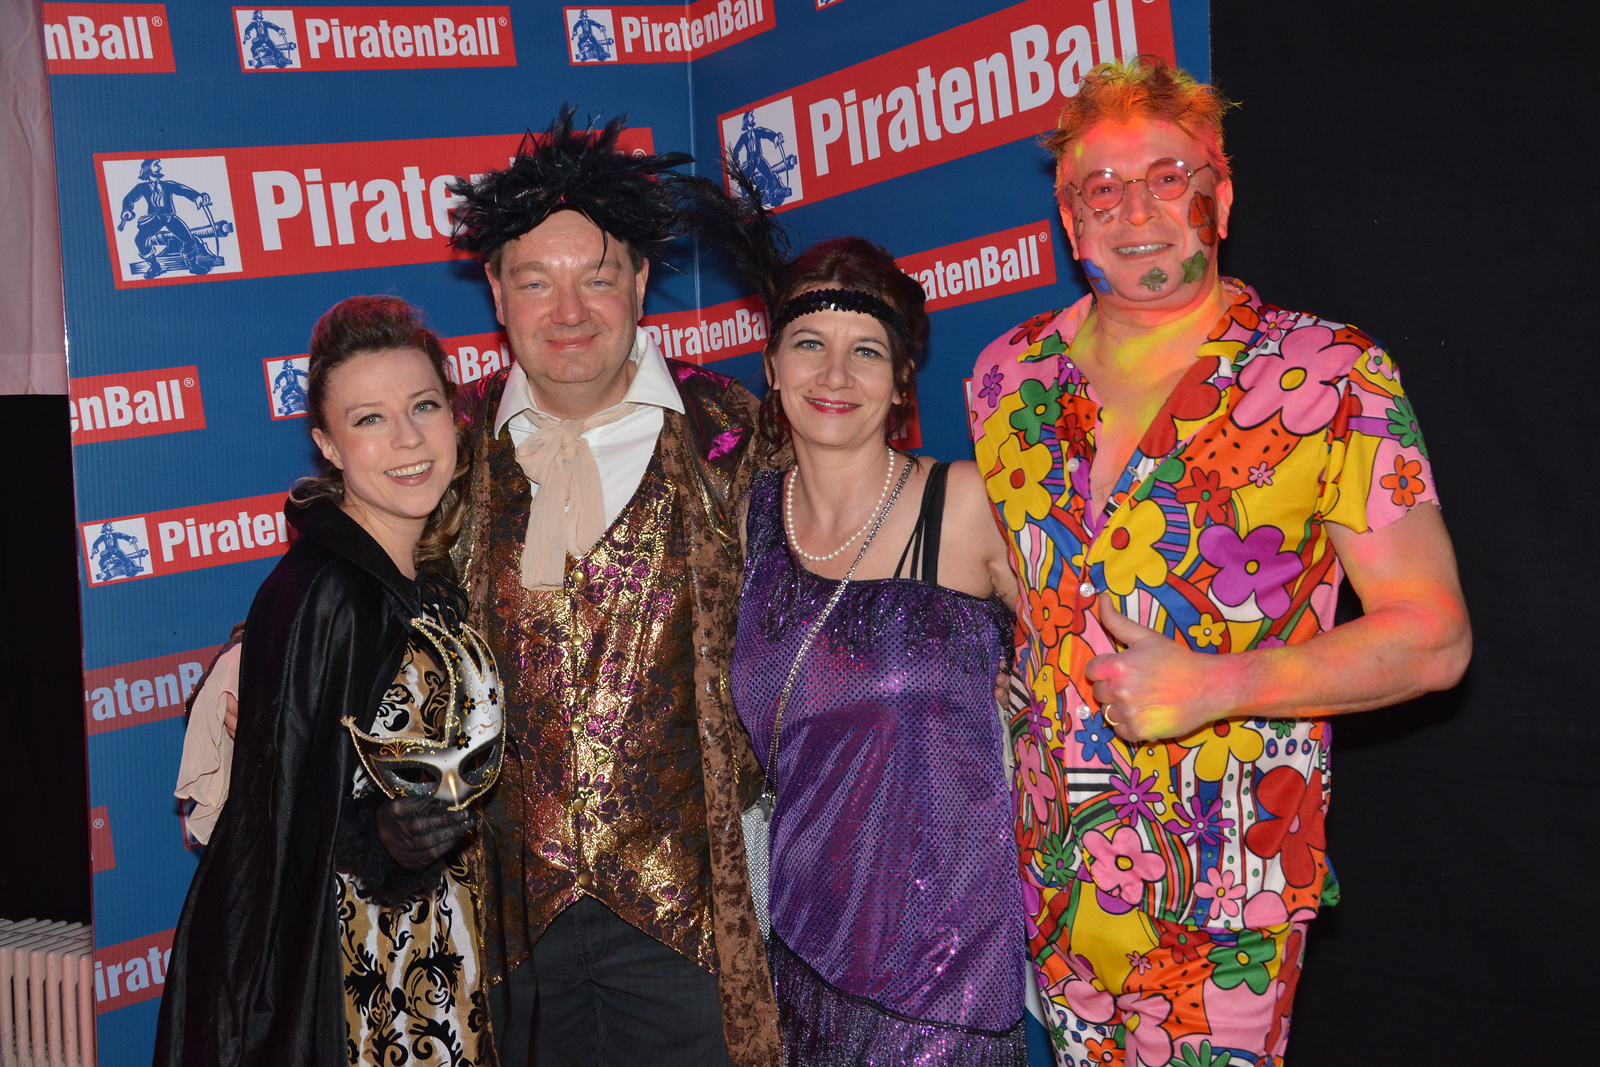 Piratenball 2016